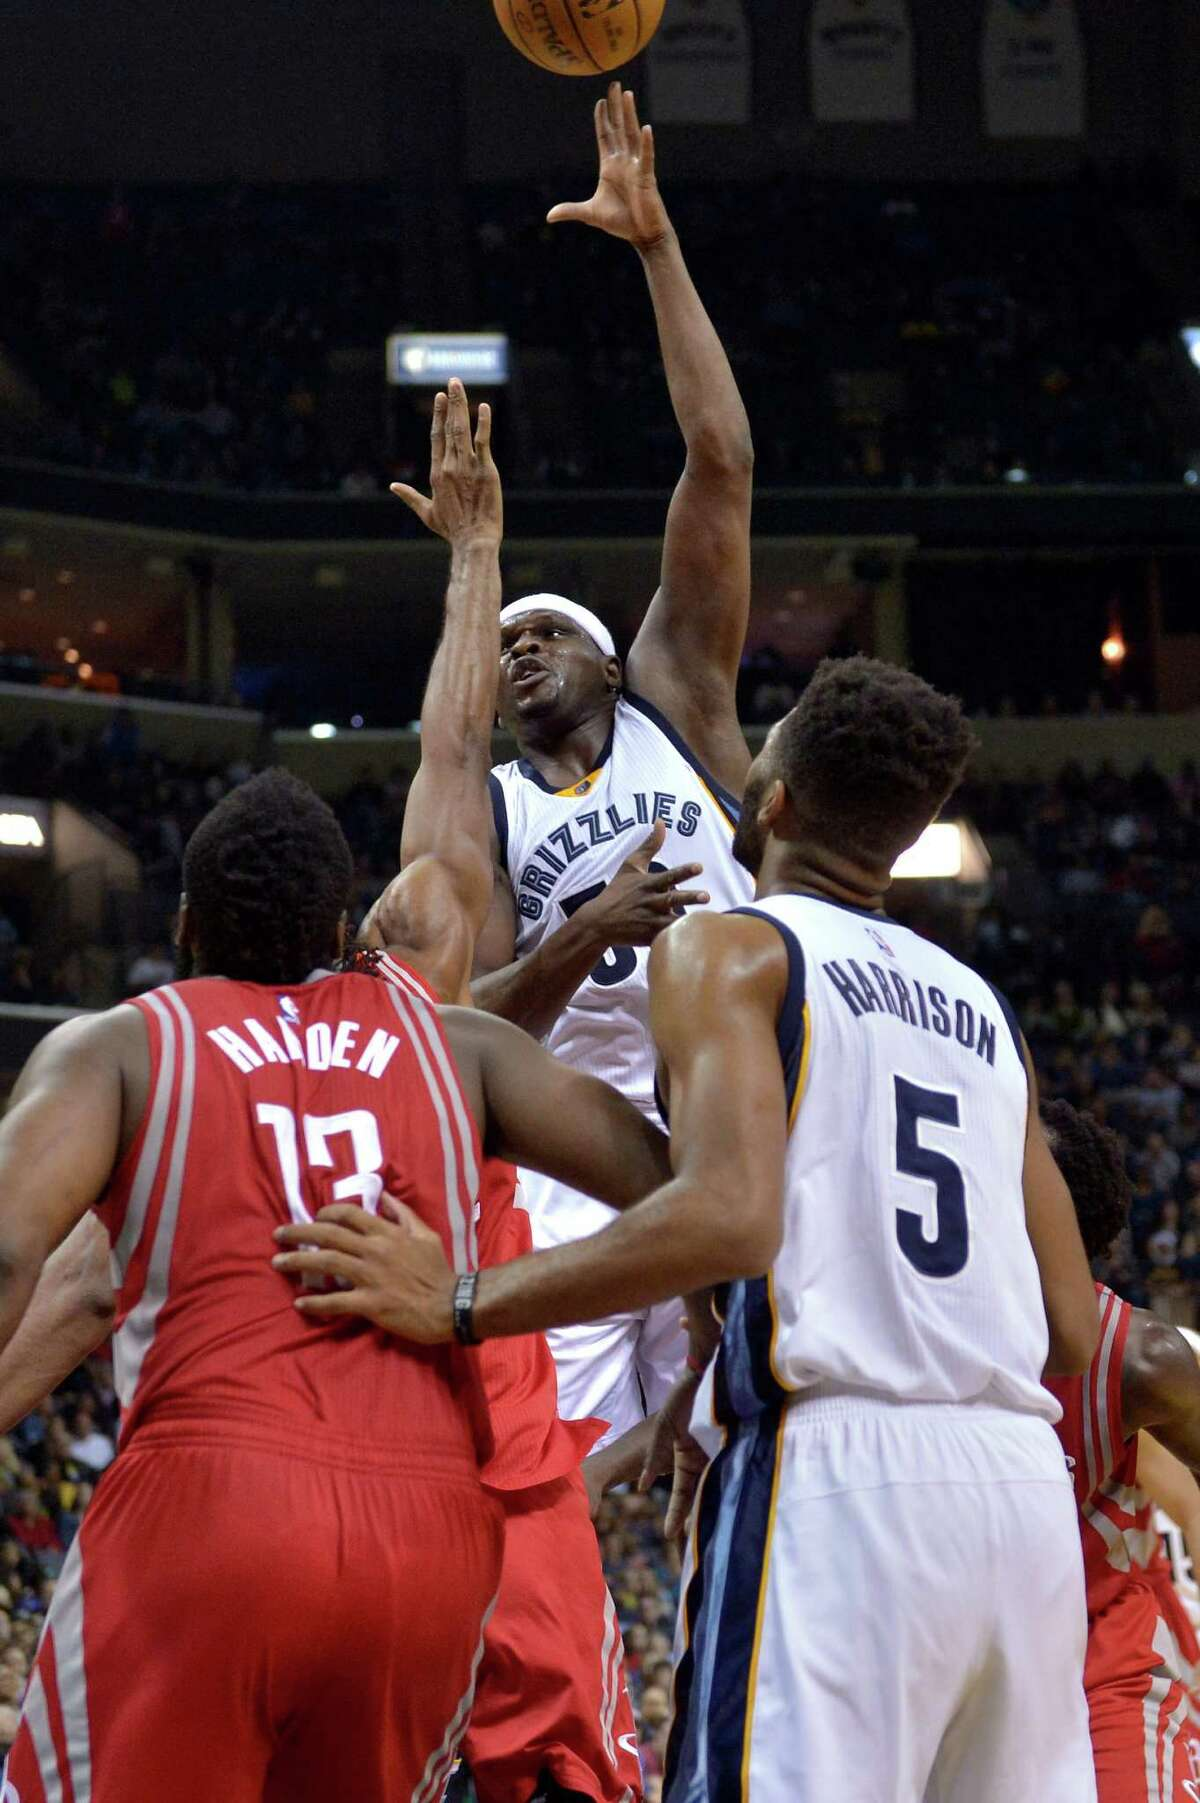 Memphis Grizzlies forward Zach Randolph shoots among a crowd of players including Houston Rockets guard James Harden (13) and Grizzlies guard Andrew Harrison (5) during the second half of an NBA basketball game Friday, Dec. 23, 2016, in Memphis, Tenn. The Grizzlies won 115-109 (AP Photo/Brandon Dill)